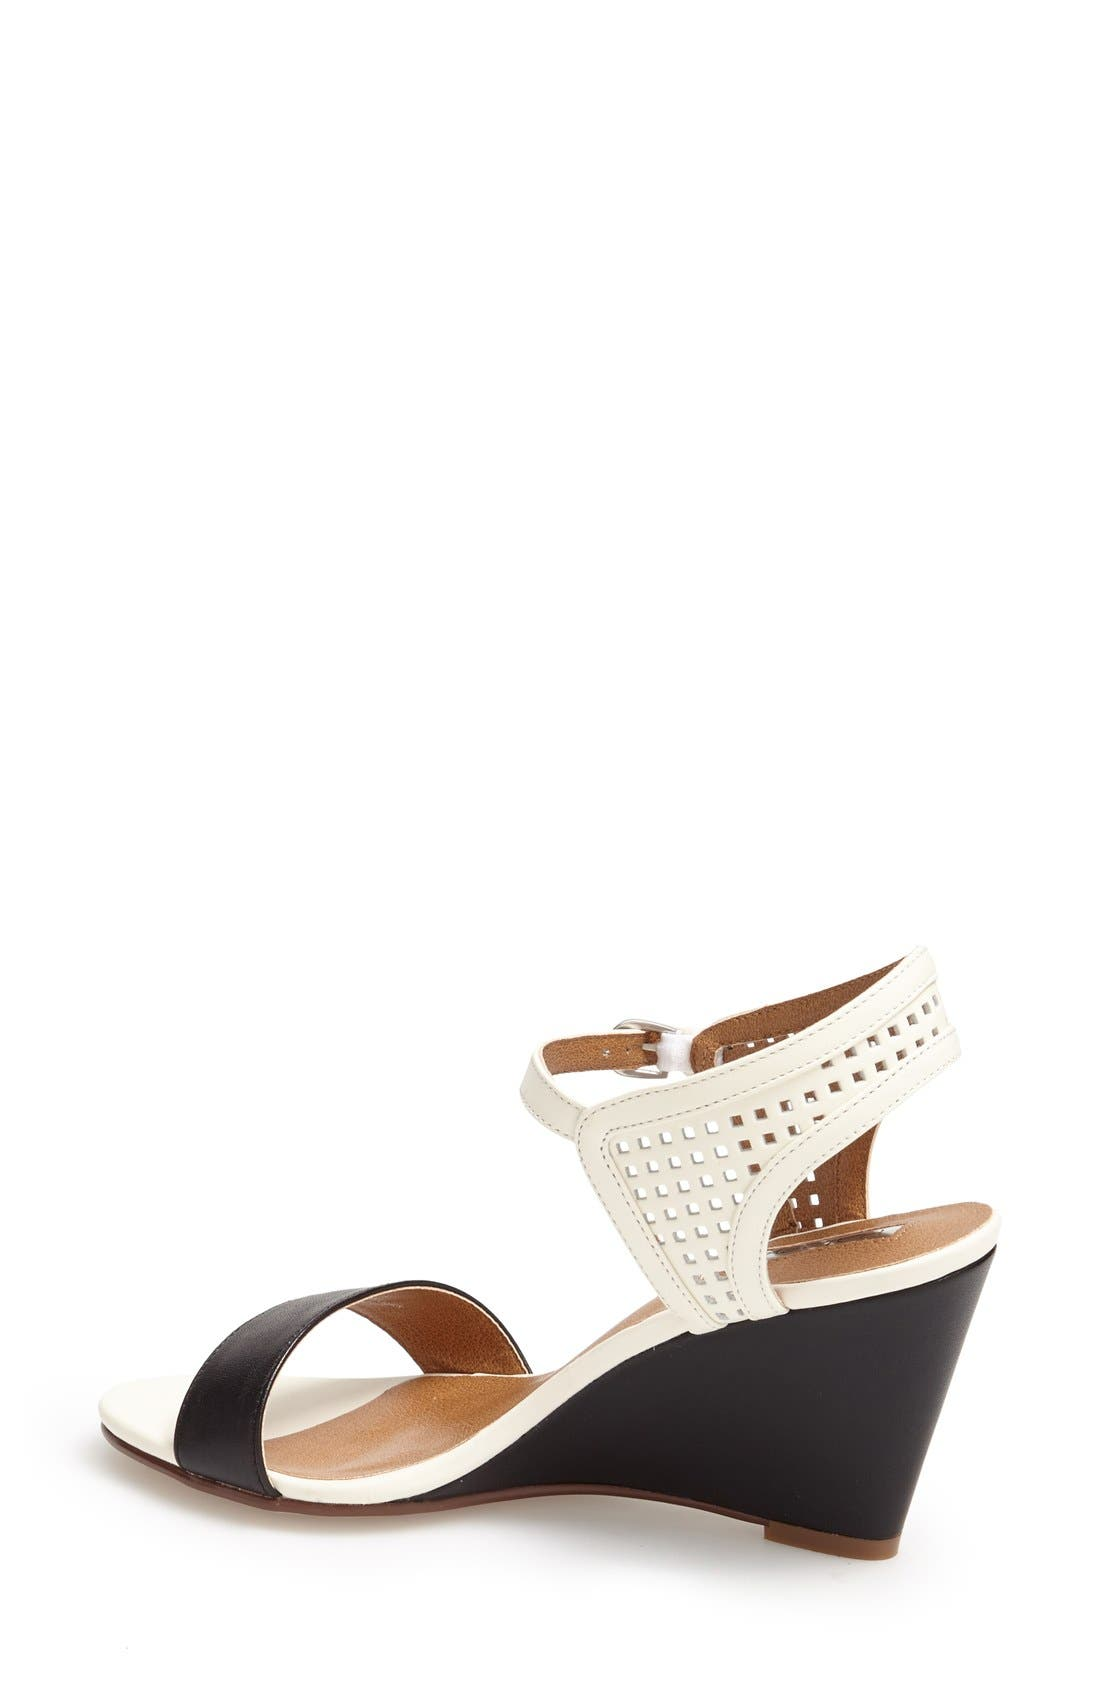 Alternate Image 2  - Halogen 'Helen' Perforated Leather Ankle Strap Wedge Sandal (Women)